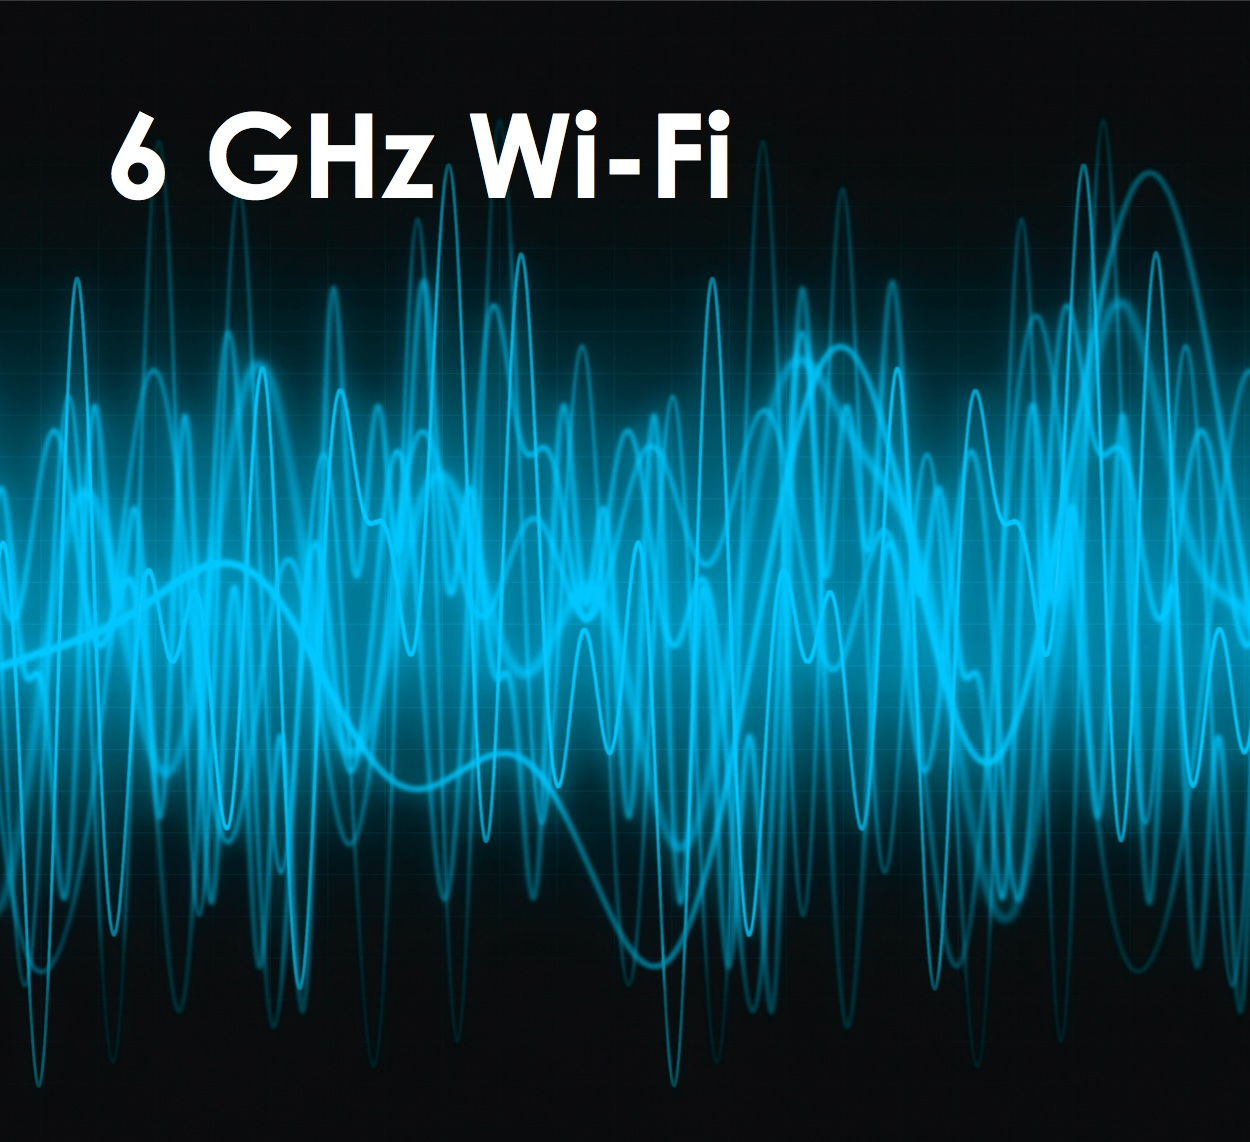 A new era in Wi-Fi: FCC fast-tracks Wi-Fi in 6 GHz band   Wi-Fi NOW Events